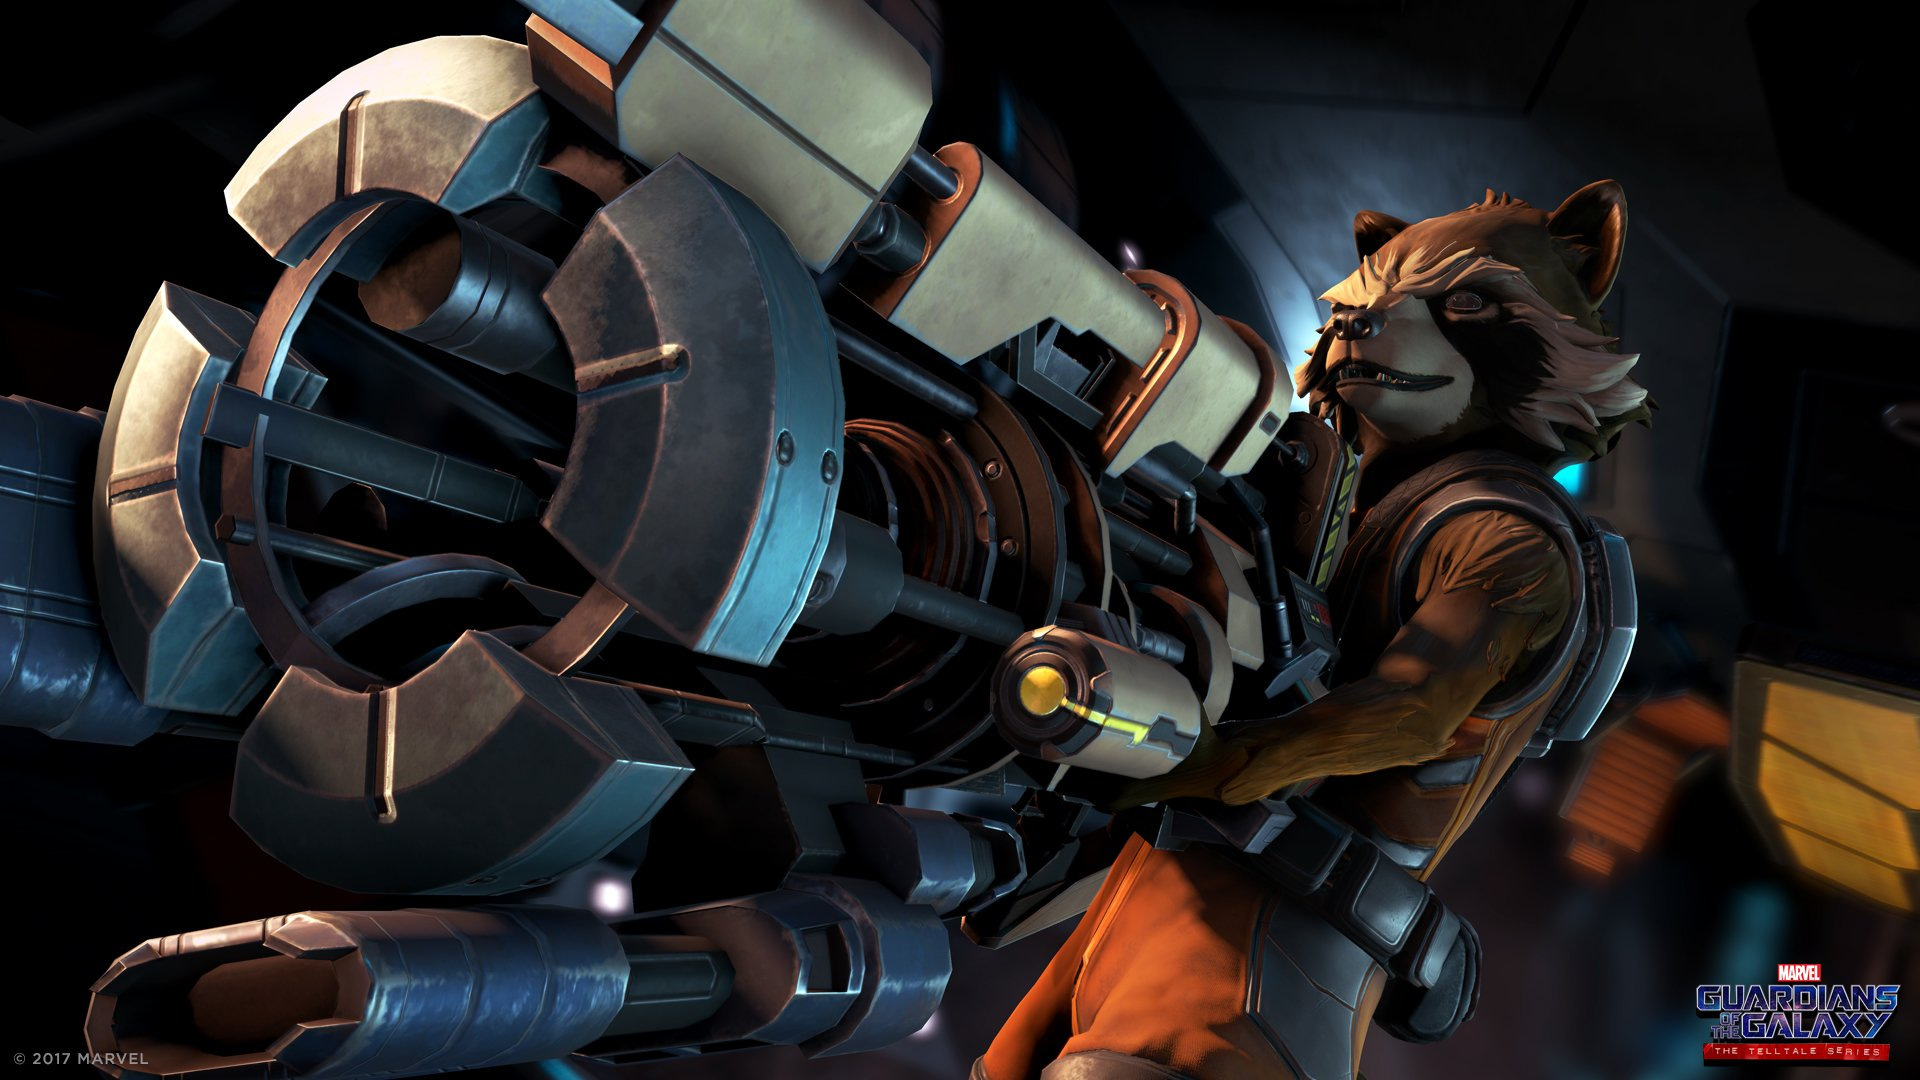 8 Guardians Of The Galaxy The Telltale Series Hd Wallpapers